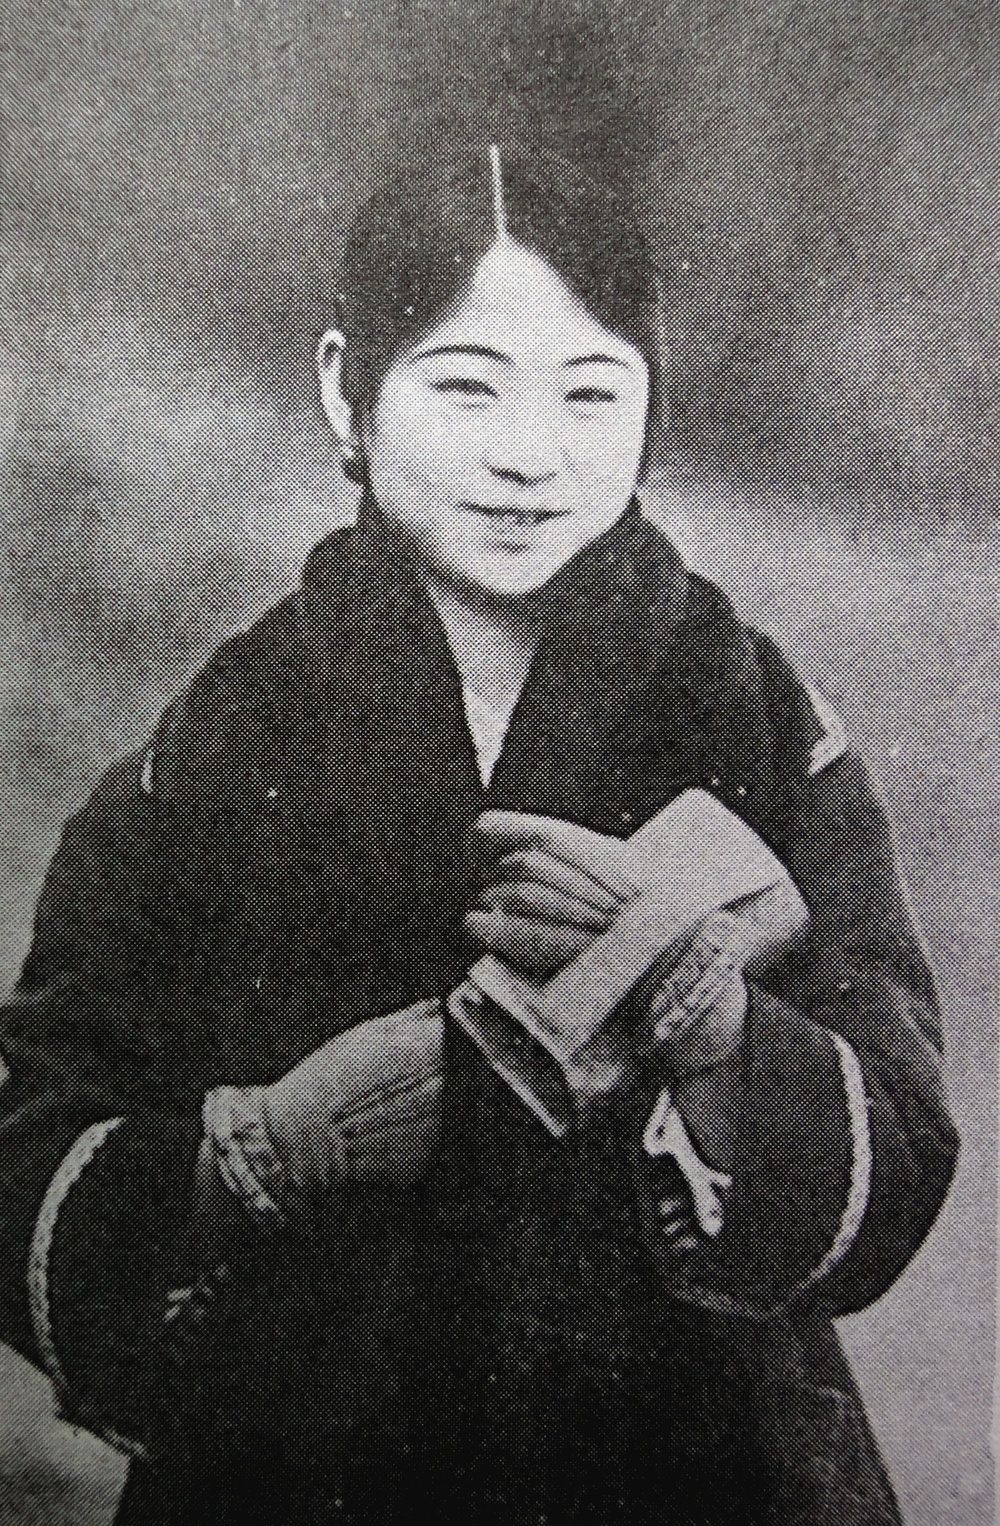 A gisaeng girl wearing Western coat, gloves, and a fur scarf holding a little clutch.